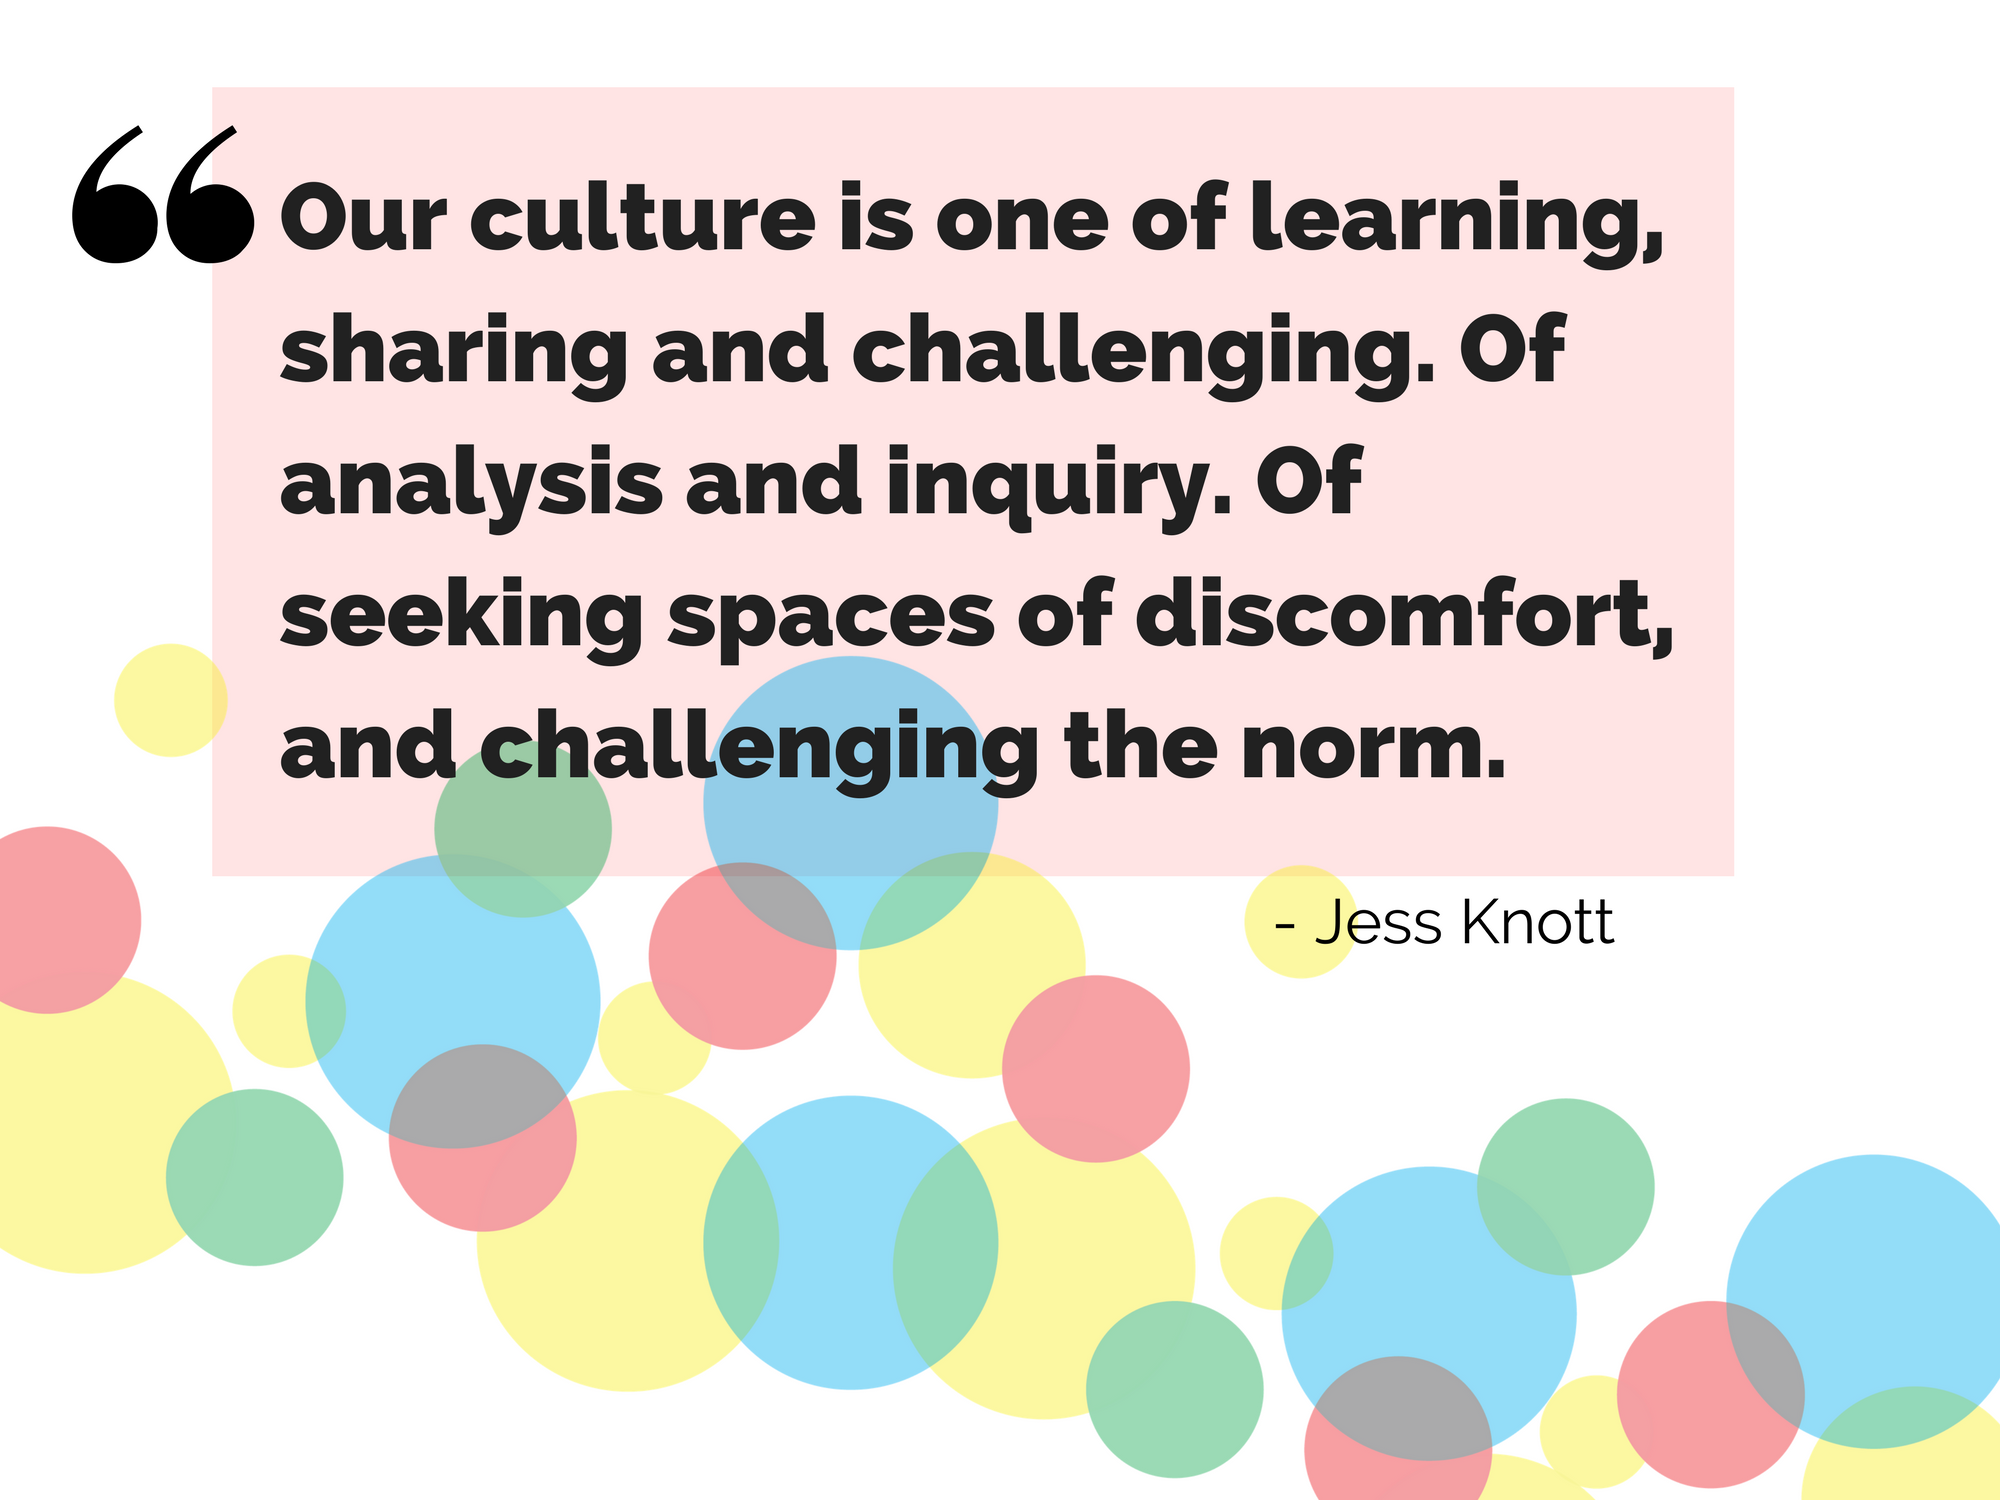 """Our culture is one of learning, sharing and challenging. Of analysis and inquiry. Of seeking spaces of discomfort, and challenging the norm."" - Jess Knott"